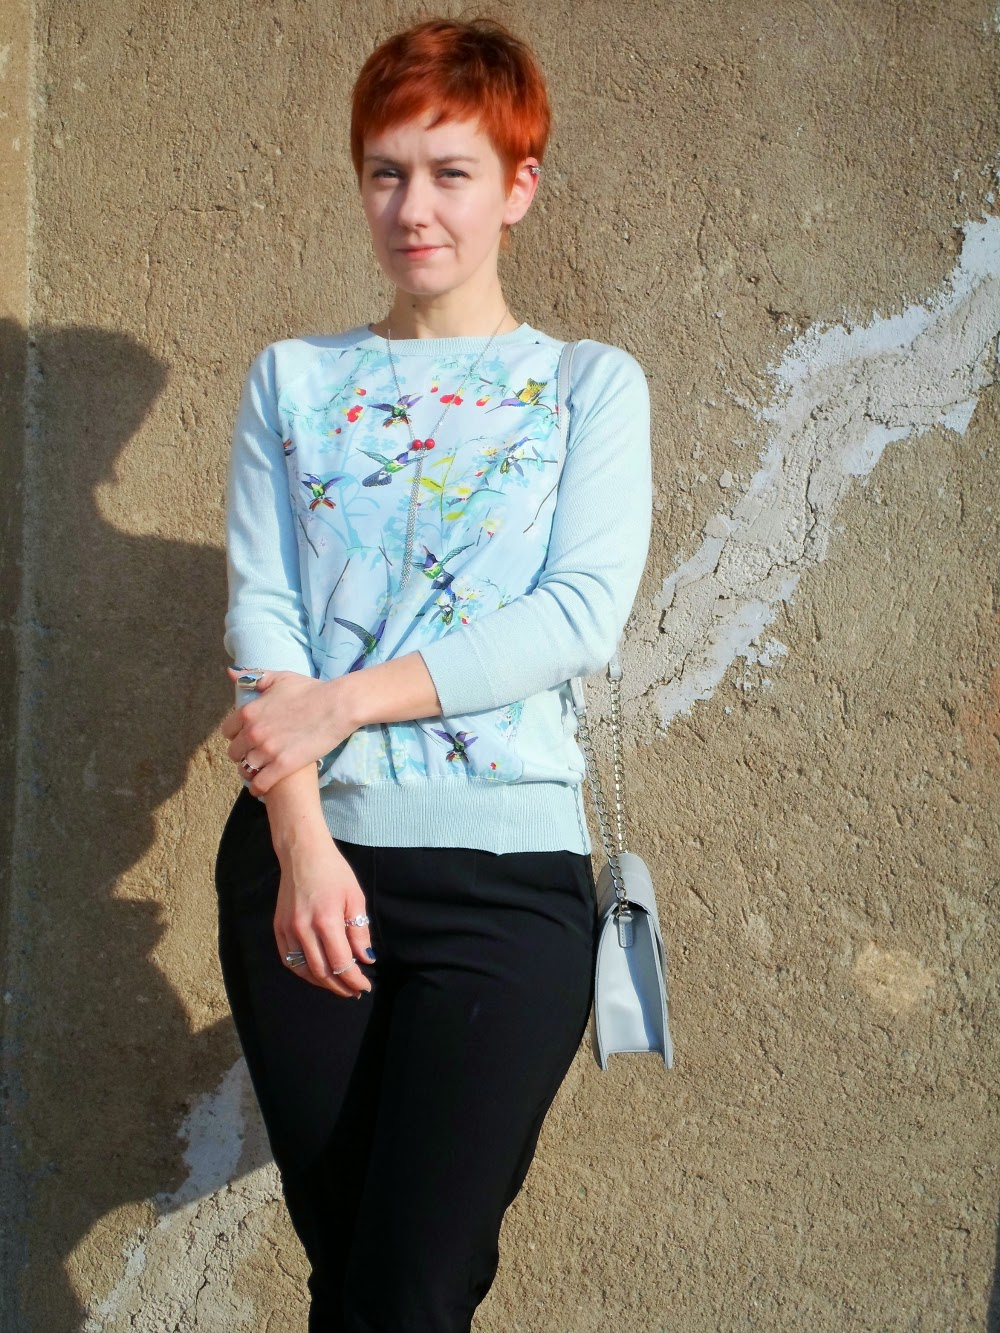 Wearing Spring - Pastell blue light sweater with flower & bird print, black blazer, black highwaist pants, silver pumps, glitter socks, heart handbag | Funky Jungle, fashion and personal style blog